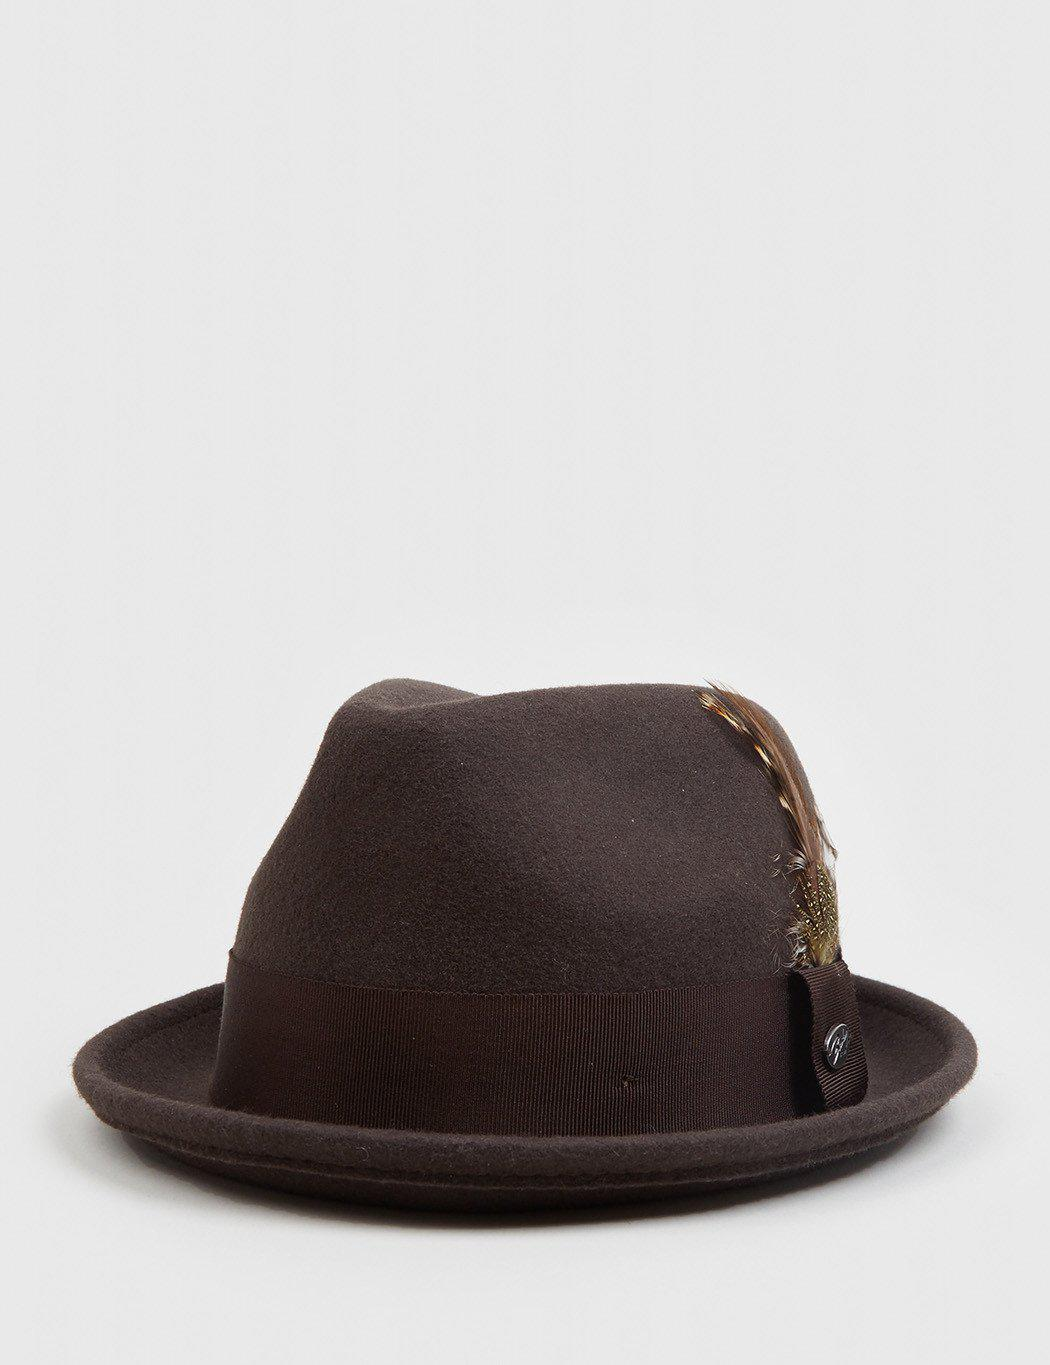 17fa35b211e42 Lyst - Bailey of Hollywood Bailey Tino Felt Crushable Trilby Hat in ...